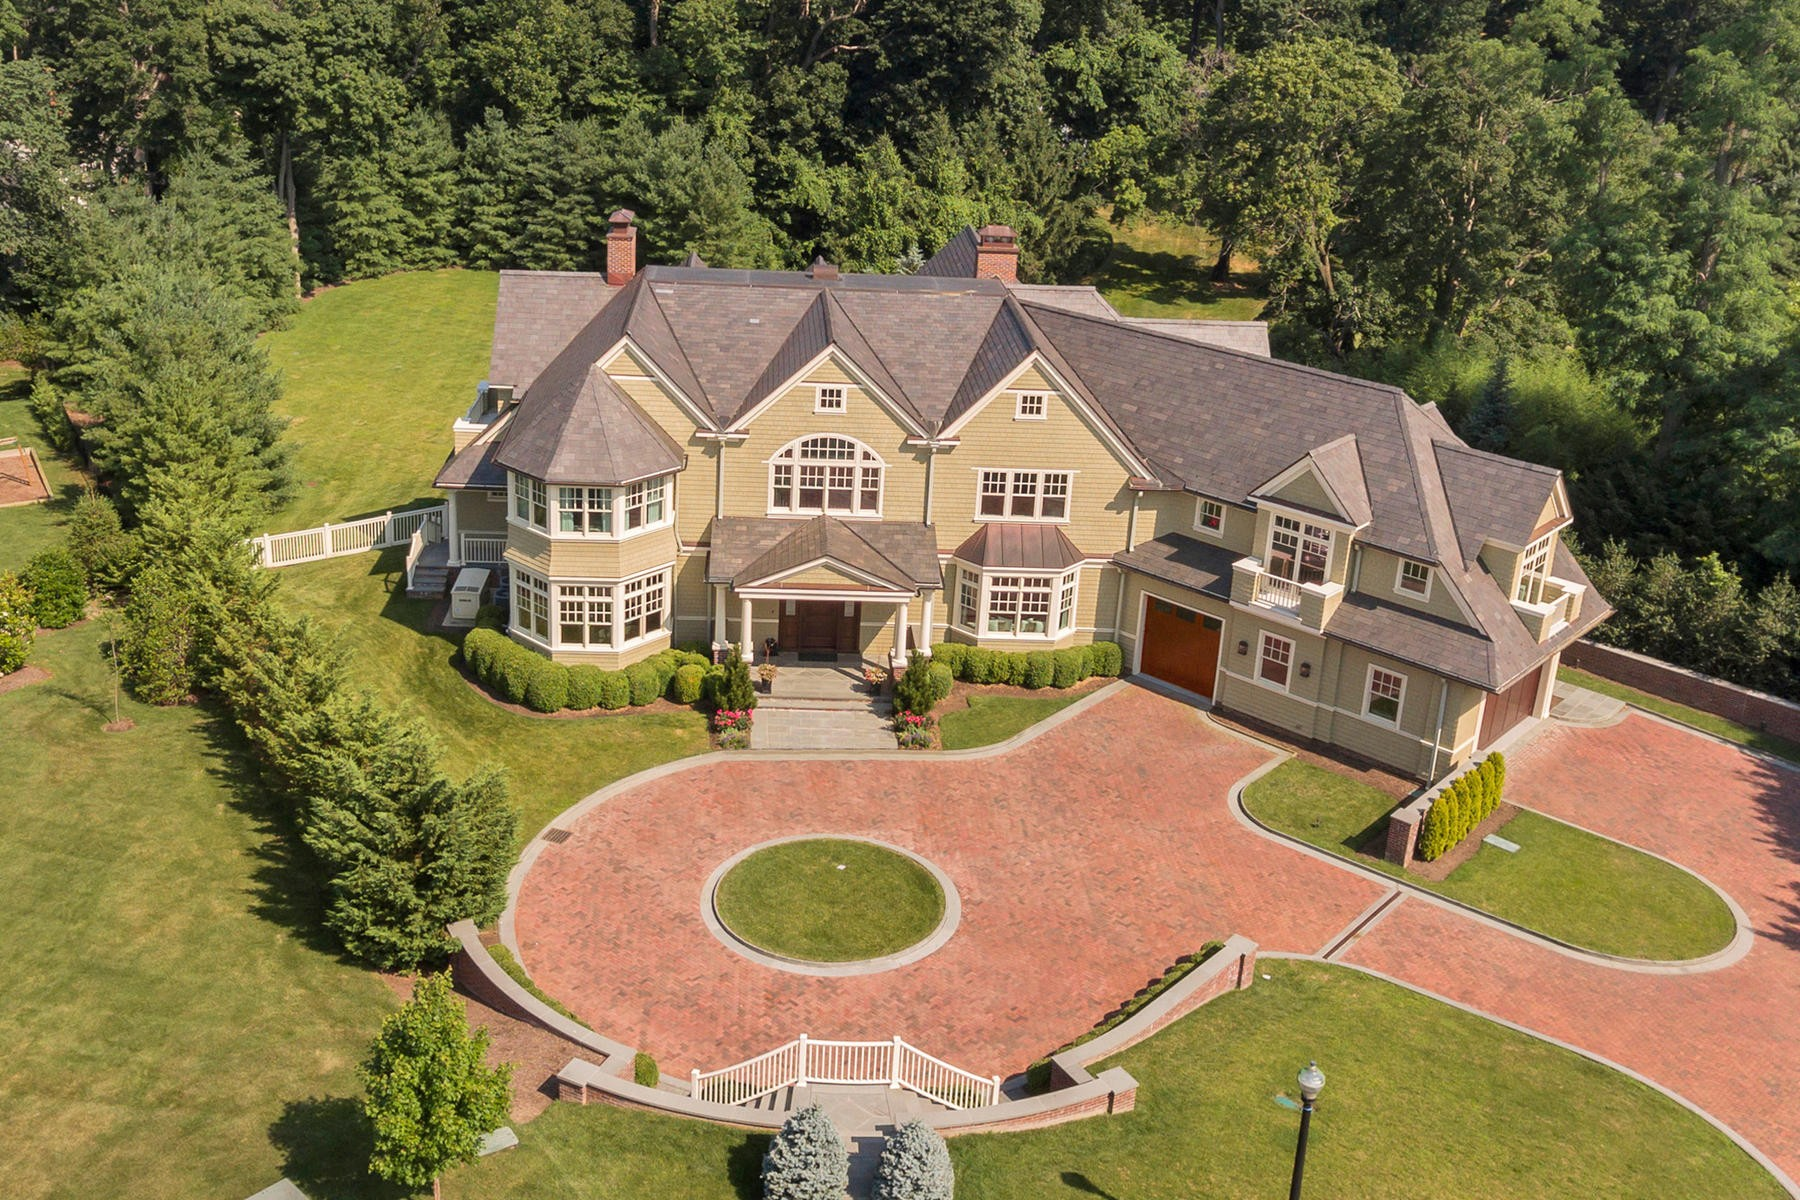 Moradia para Venda às Magnificent Custom Estate 11 Sugar Maple Ln Rumson, Nova Jersey, 07760 Estados Unidos